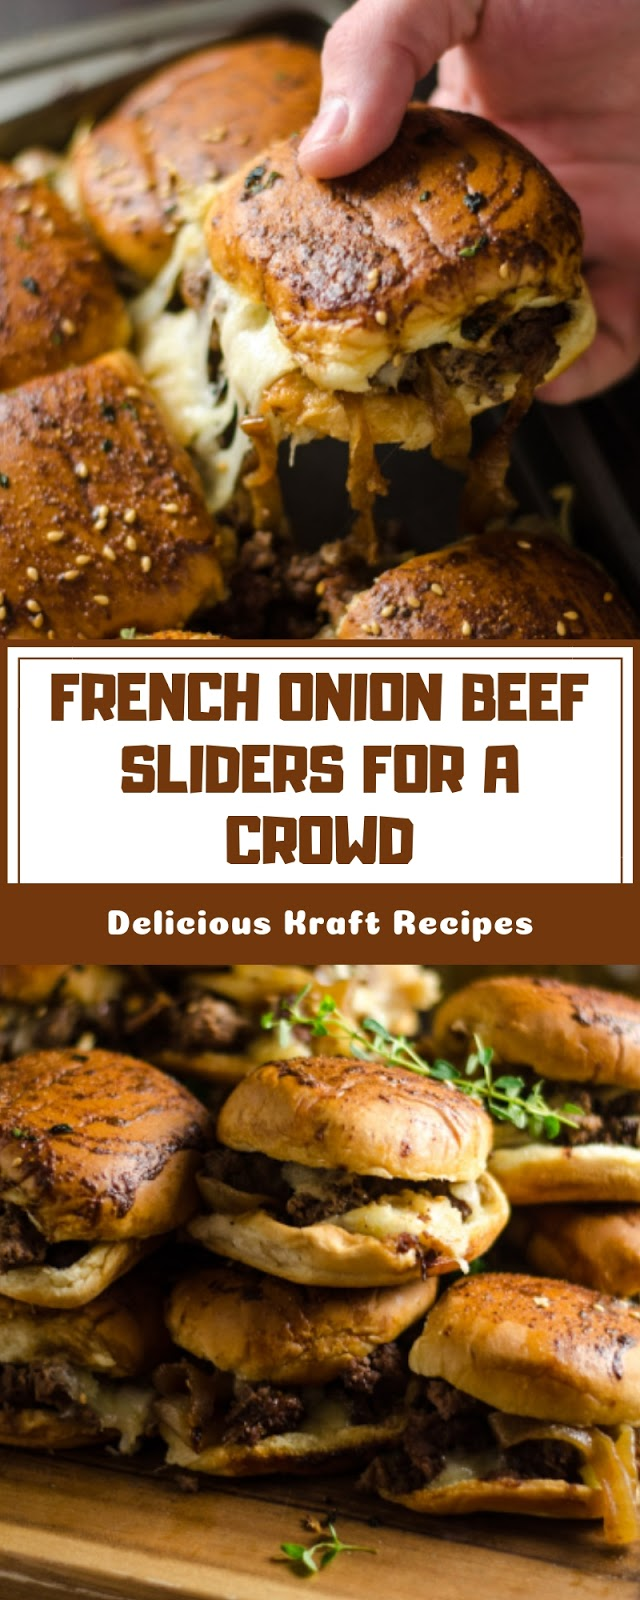 FRENCH ONION BEEF SLIDERS FOR A CROWD